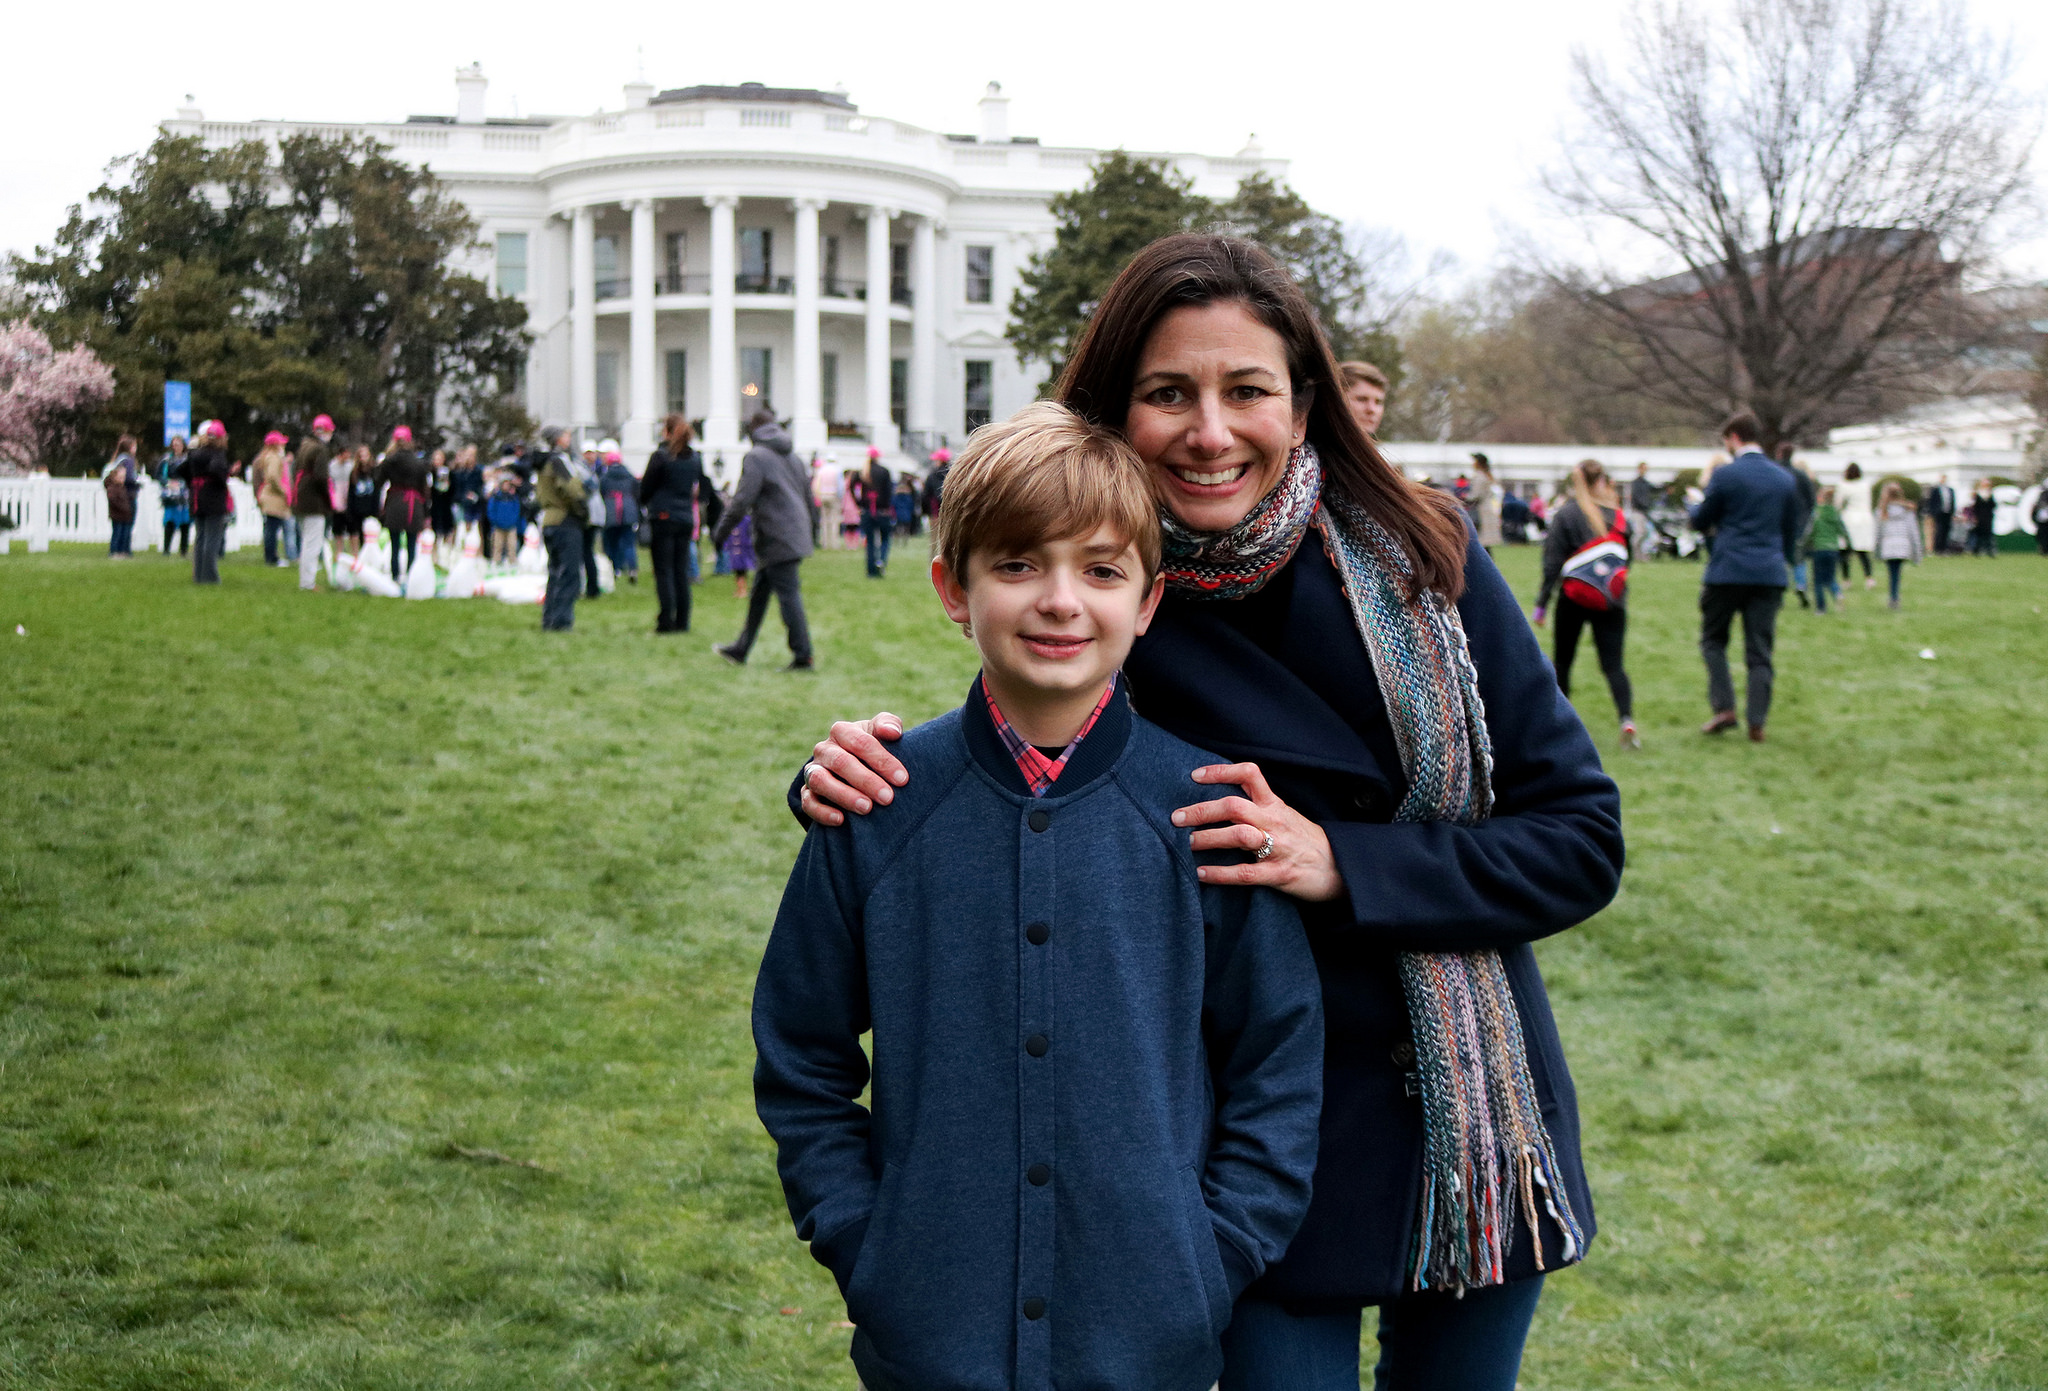 Mother and Son in front of the White House